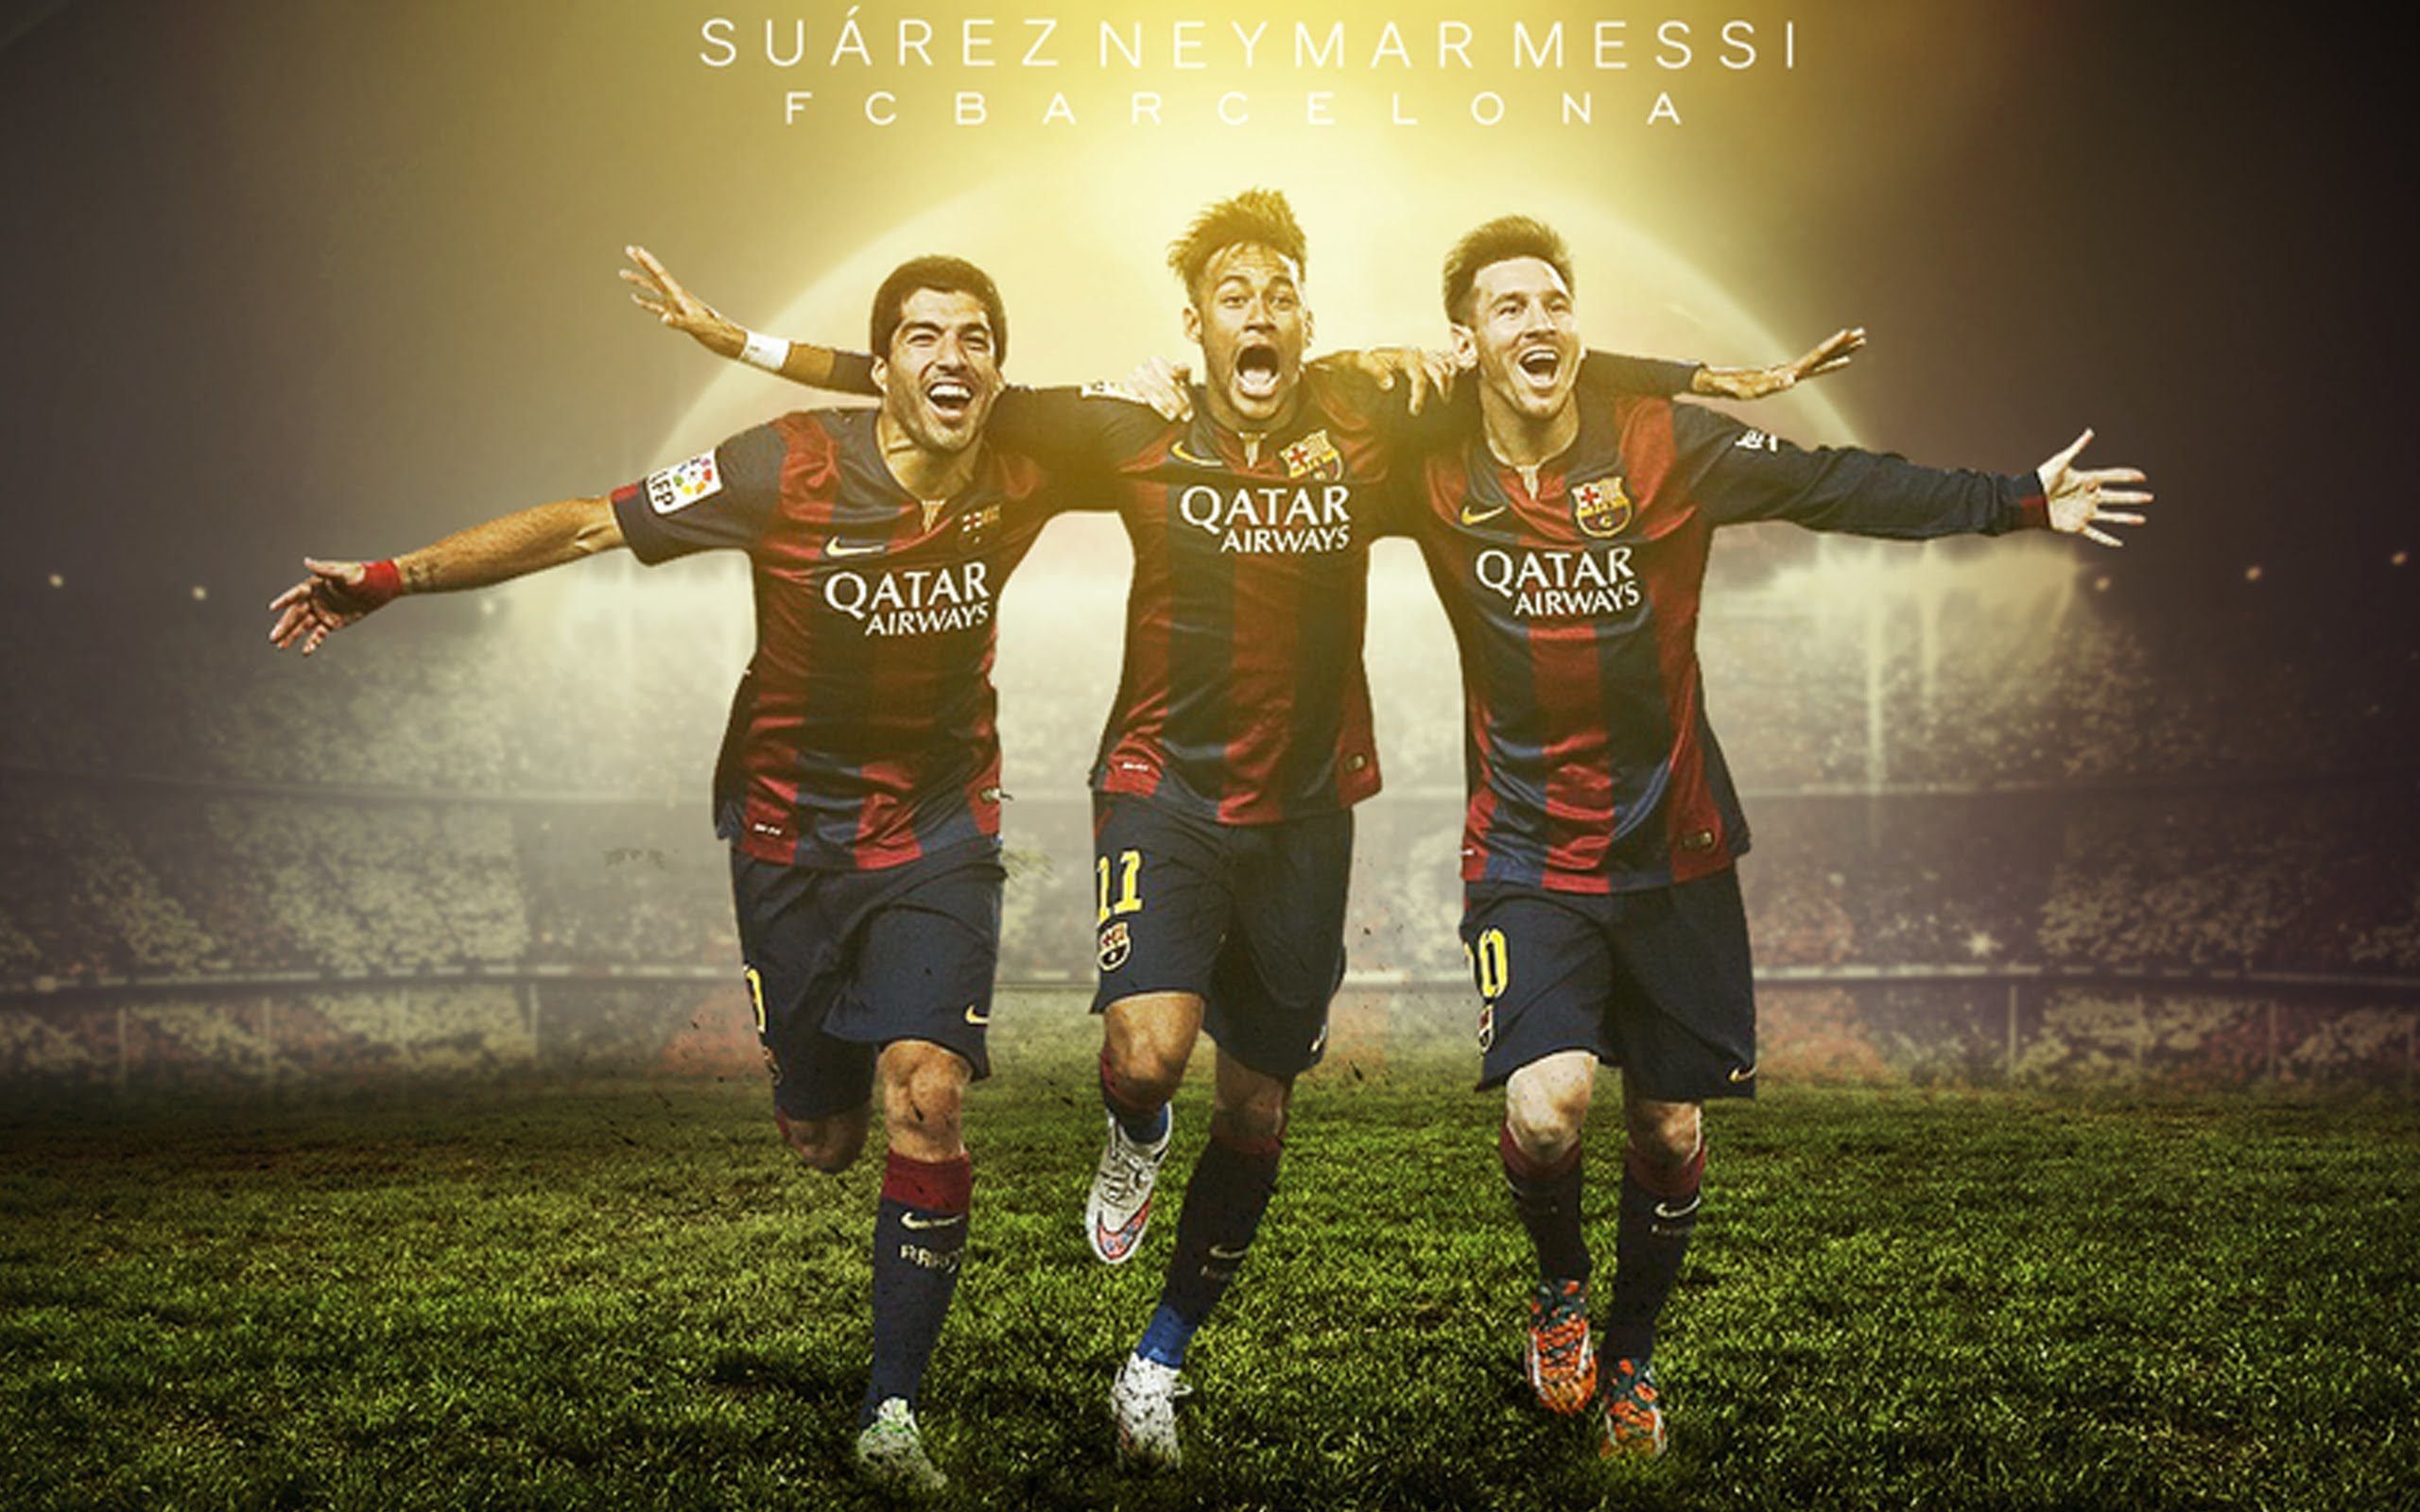 Messi wallpapers hd free download 3